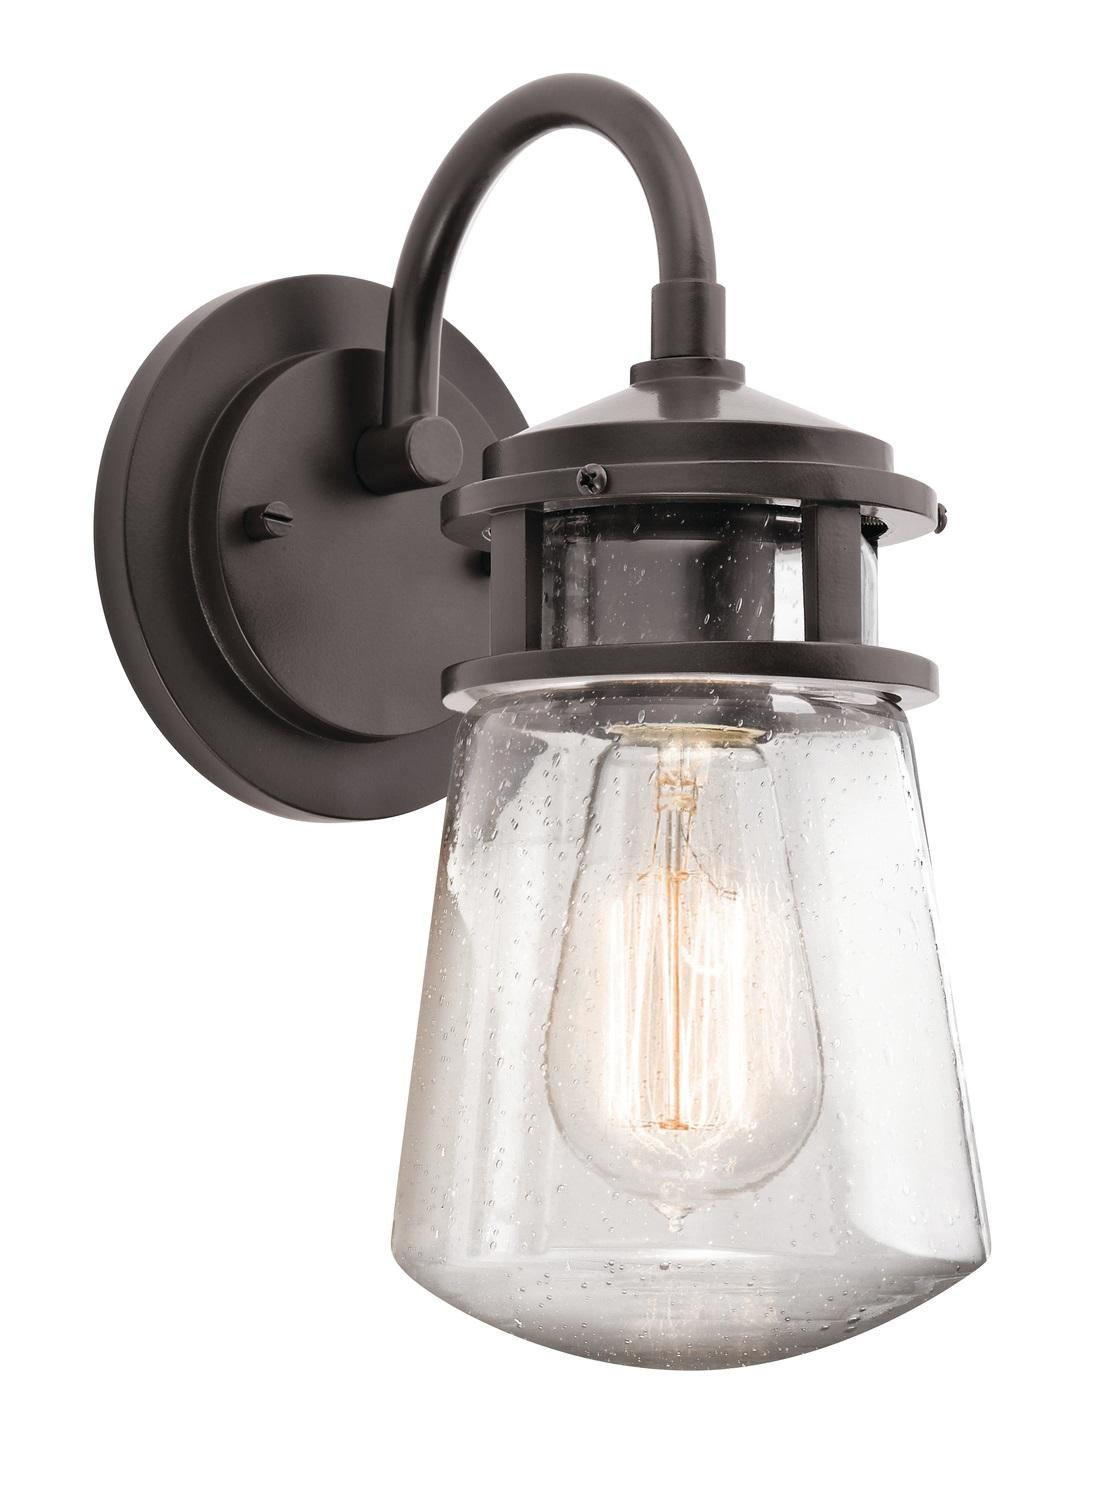 Kichler 49500bktled Lyndon Portable Led Lantern With Built